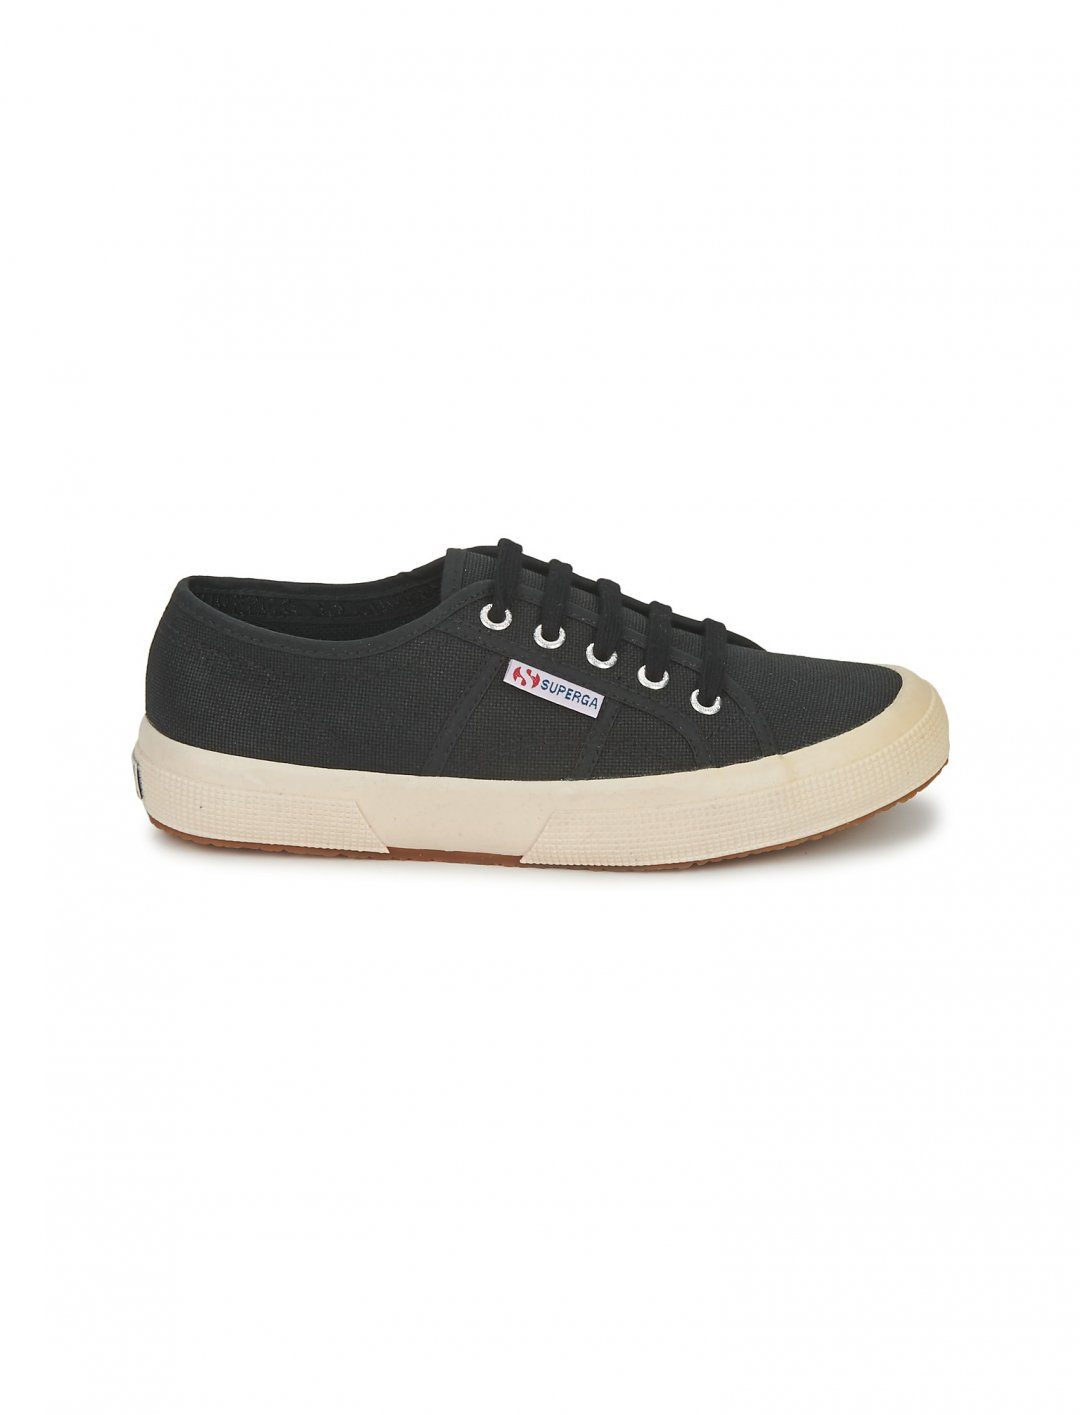 "Superga Trainers {""id"":12,""product_section_id"":1,""name"":""Shoes"",""order"":12} Superga"